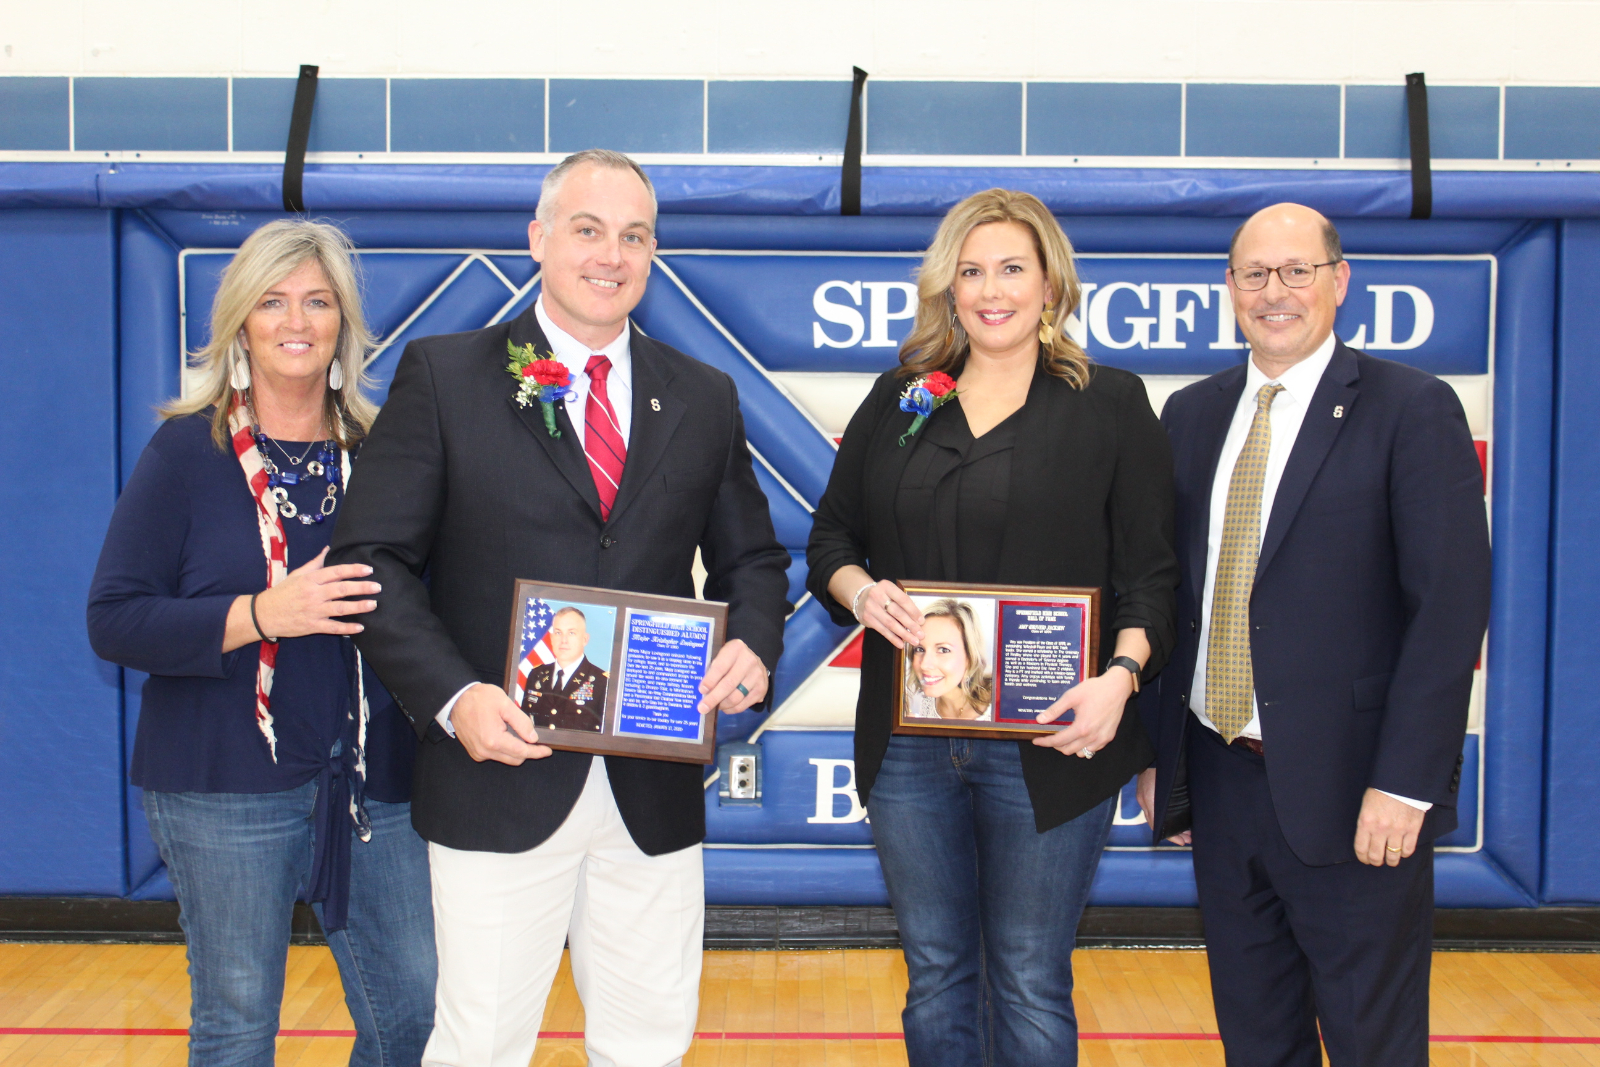 Kristopher Lovingood ('90) and Amy (Driver) Jackson ('98) Inducted into Hall of Fame